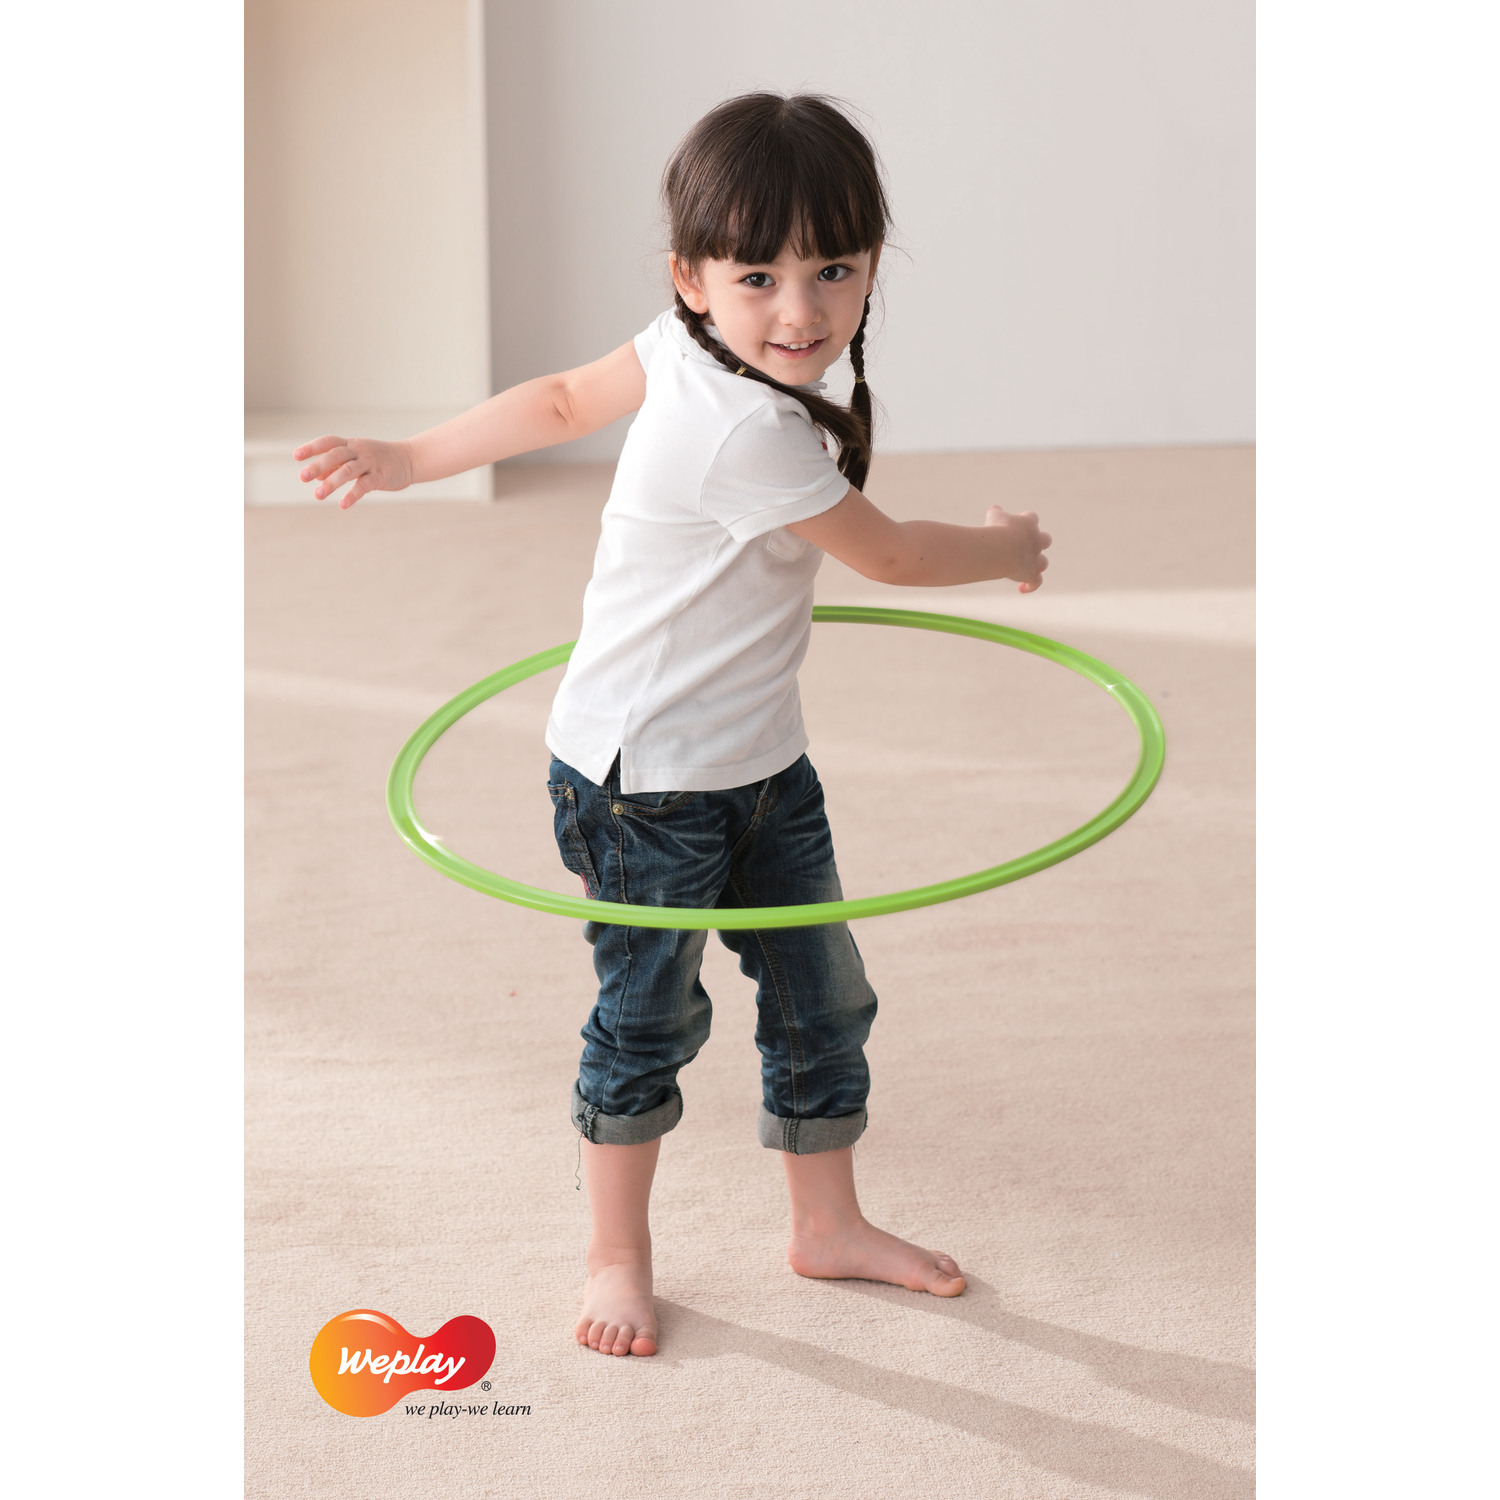 hula hoop reifen bunt 8 teilig von weplay g nstig bei mariposa toys kaufen. Black Bedroom Furniture Sets. Home Design Ideas